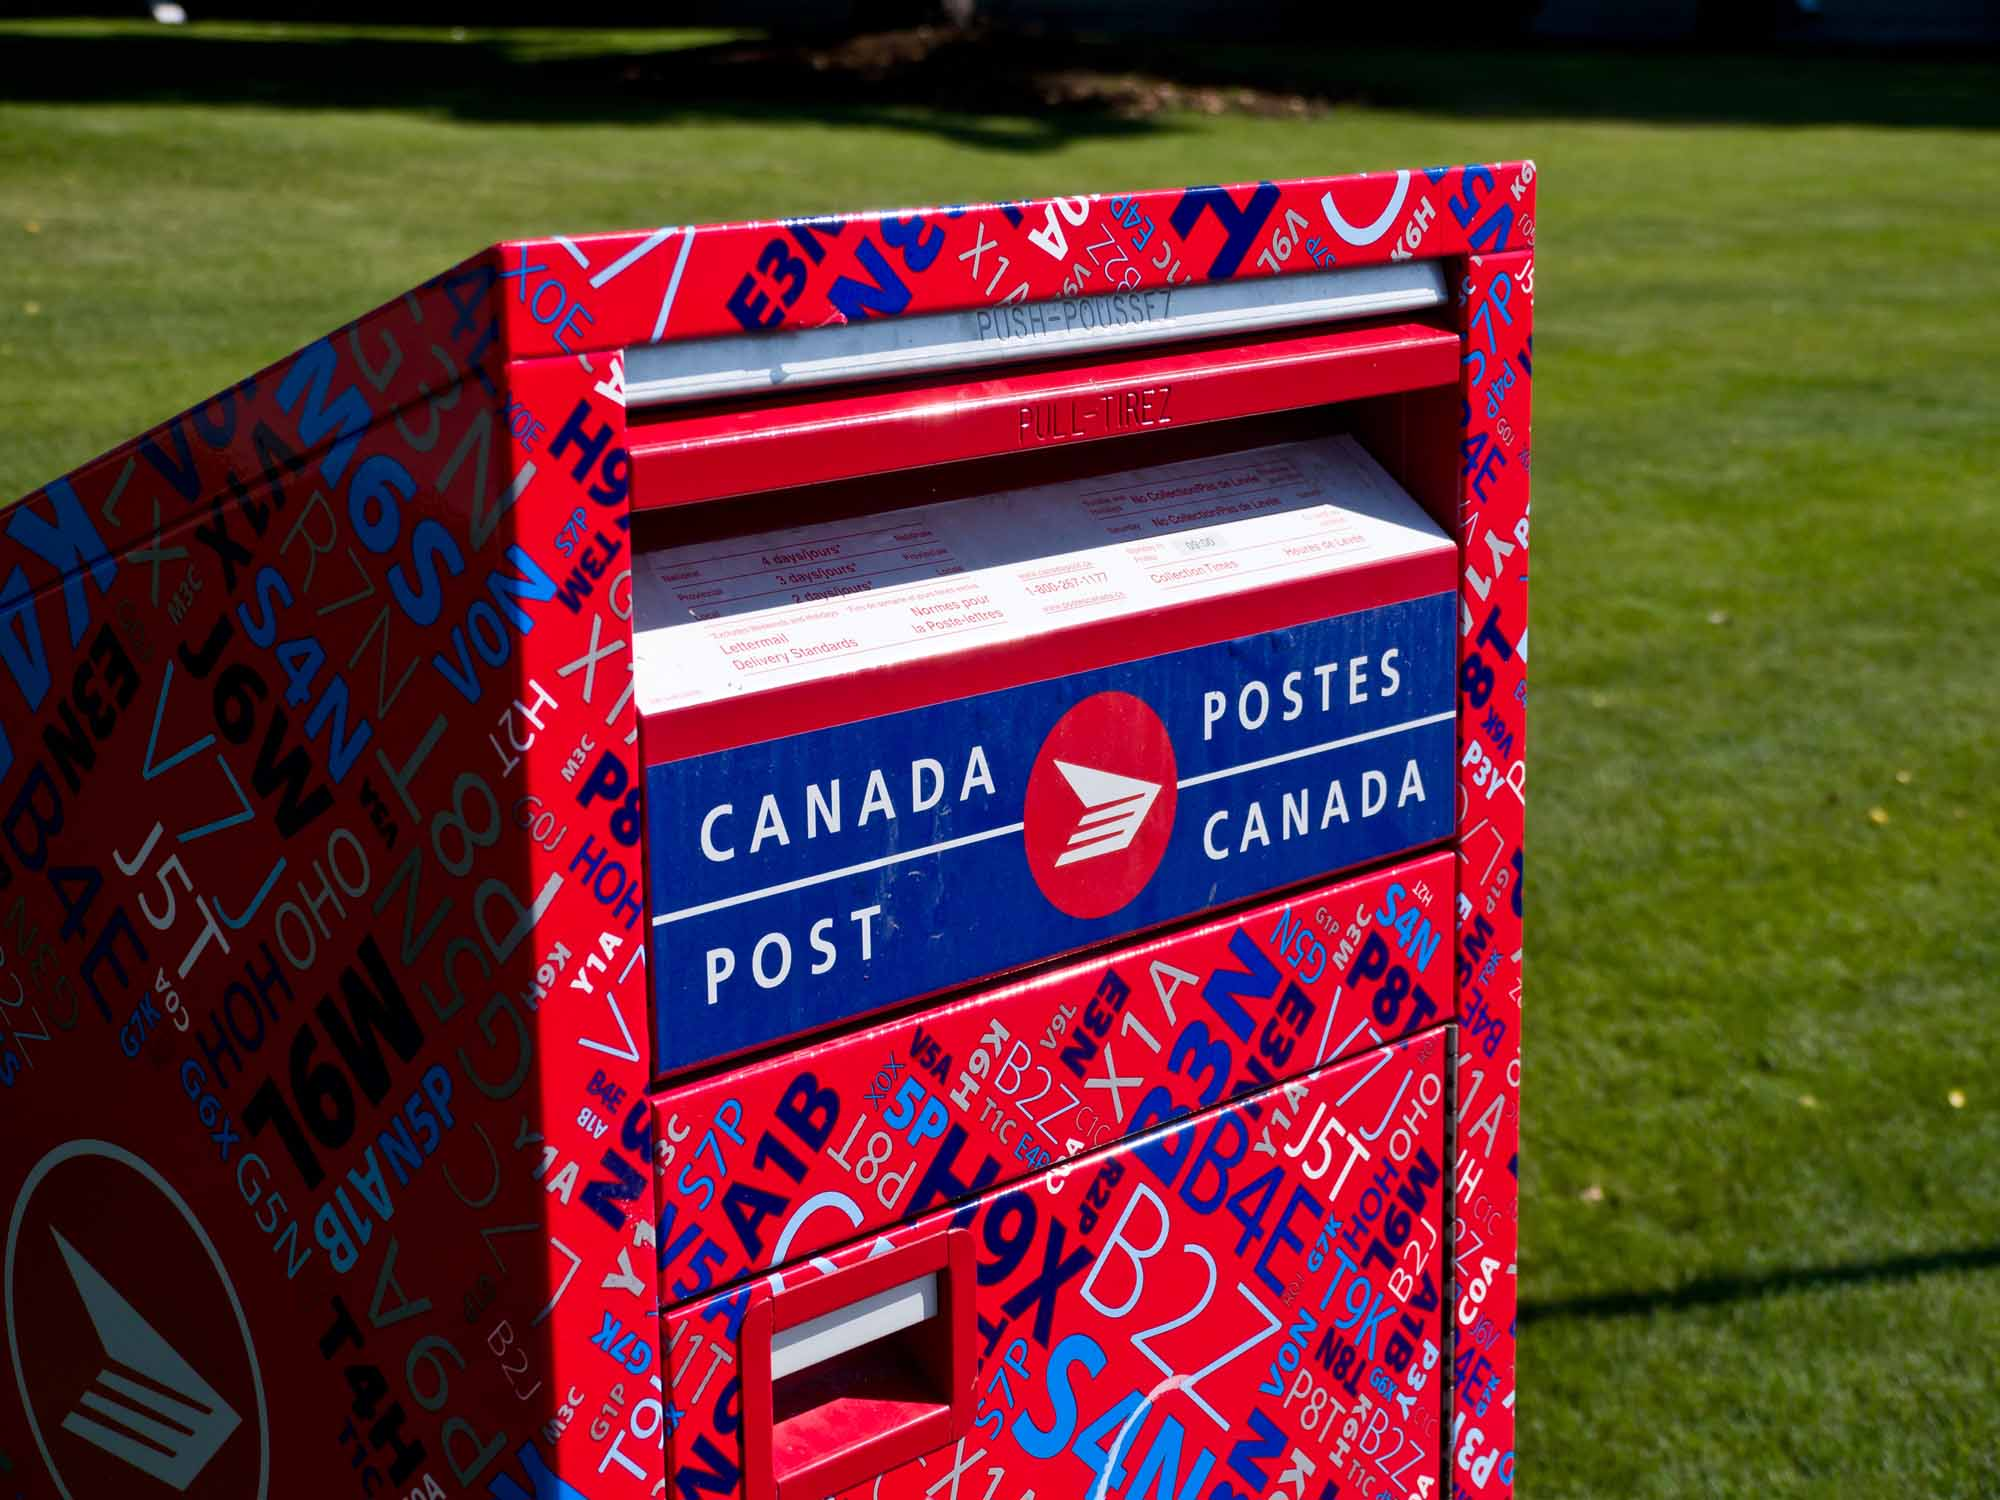 Canada Post Corporation The Canadian Encyclopedia - The canadian encyclopedia